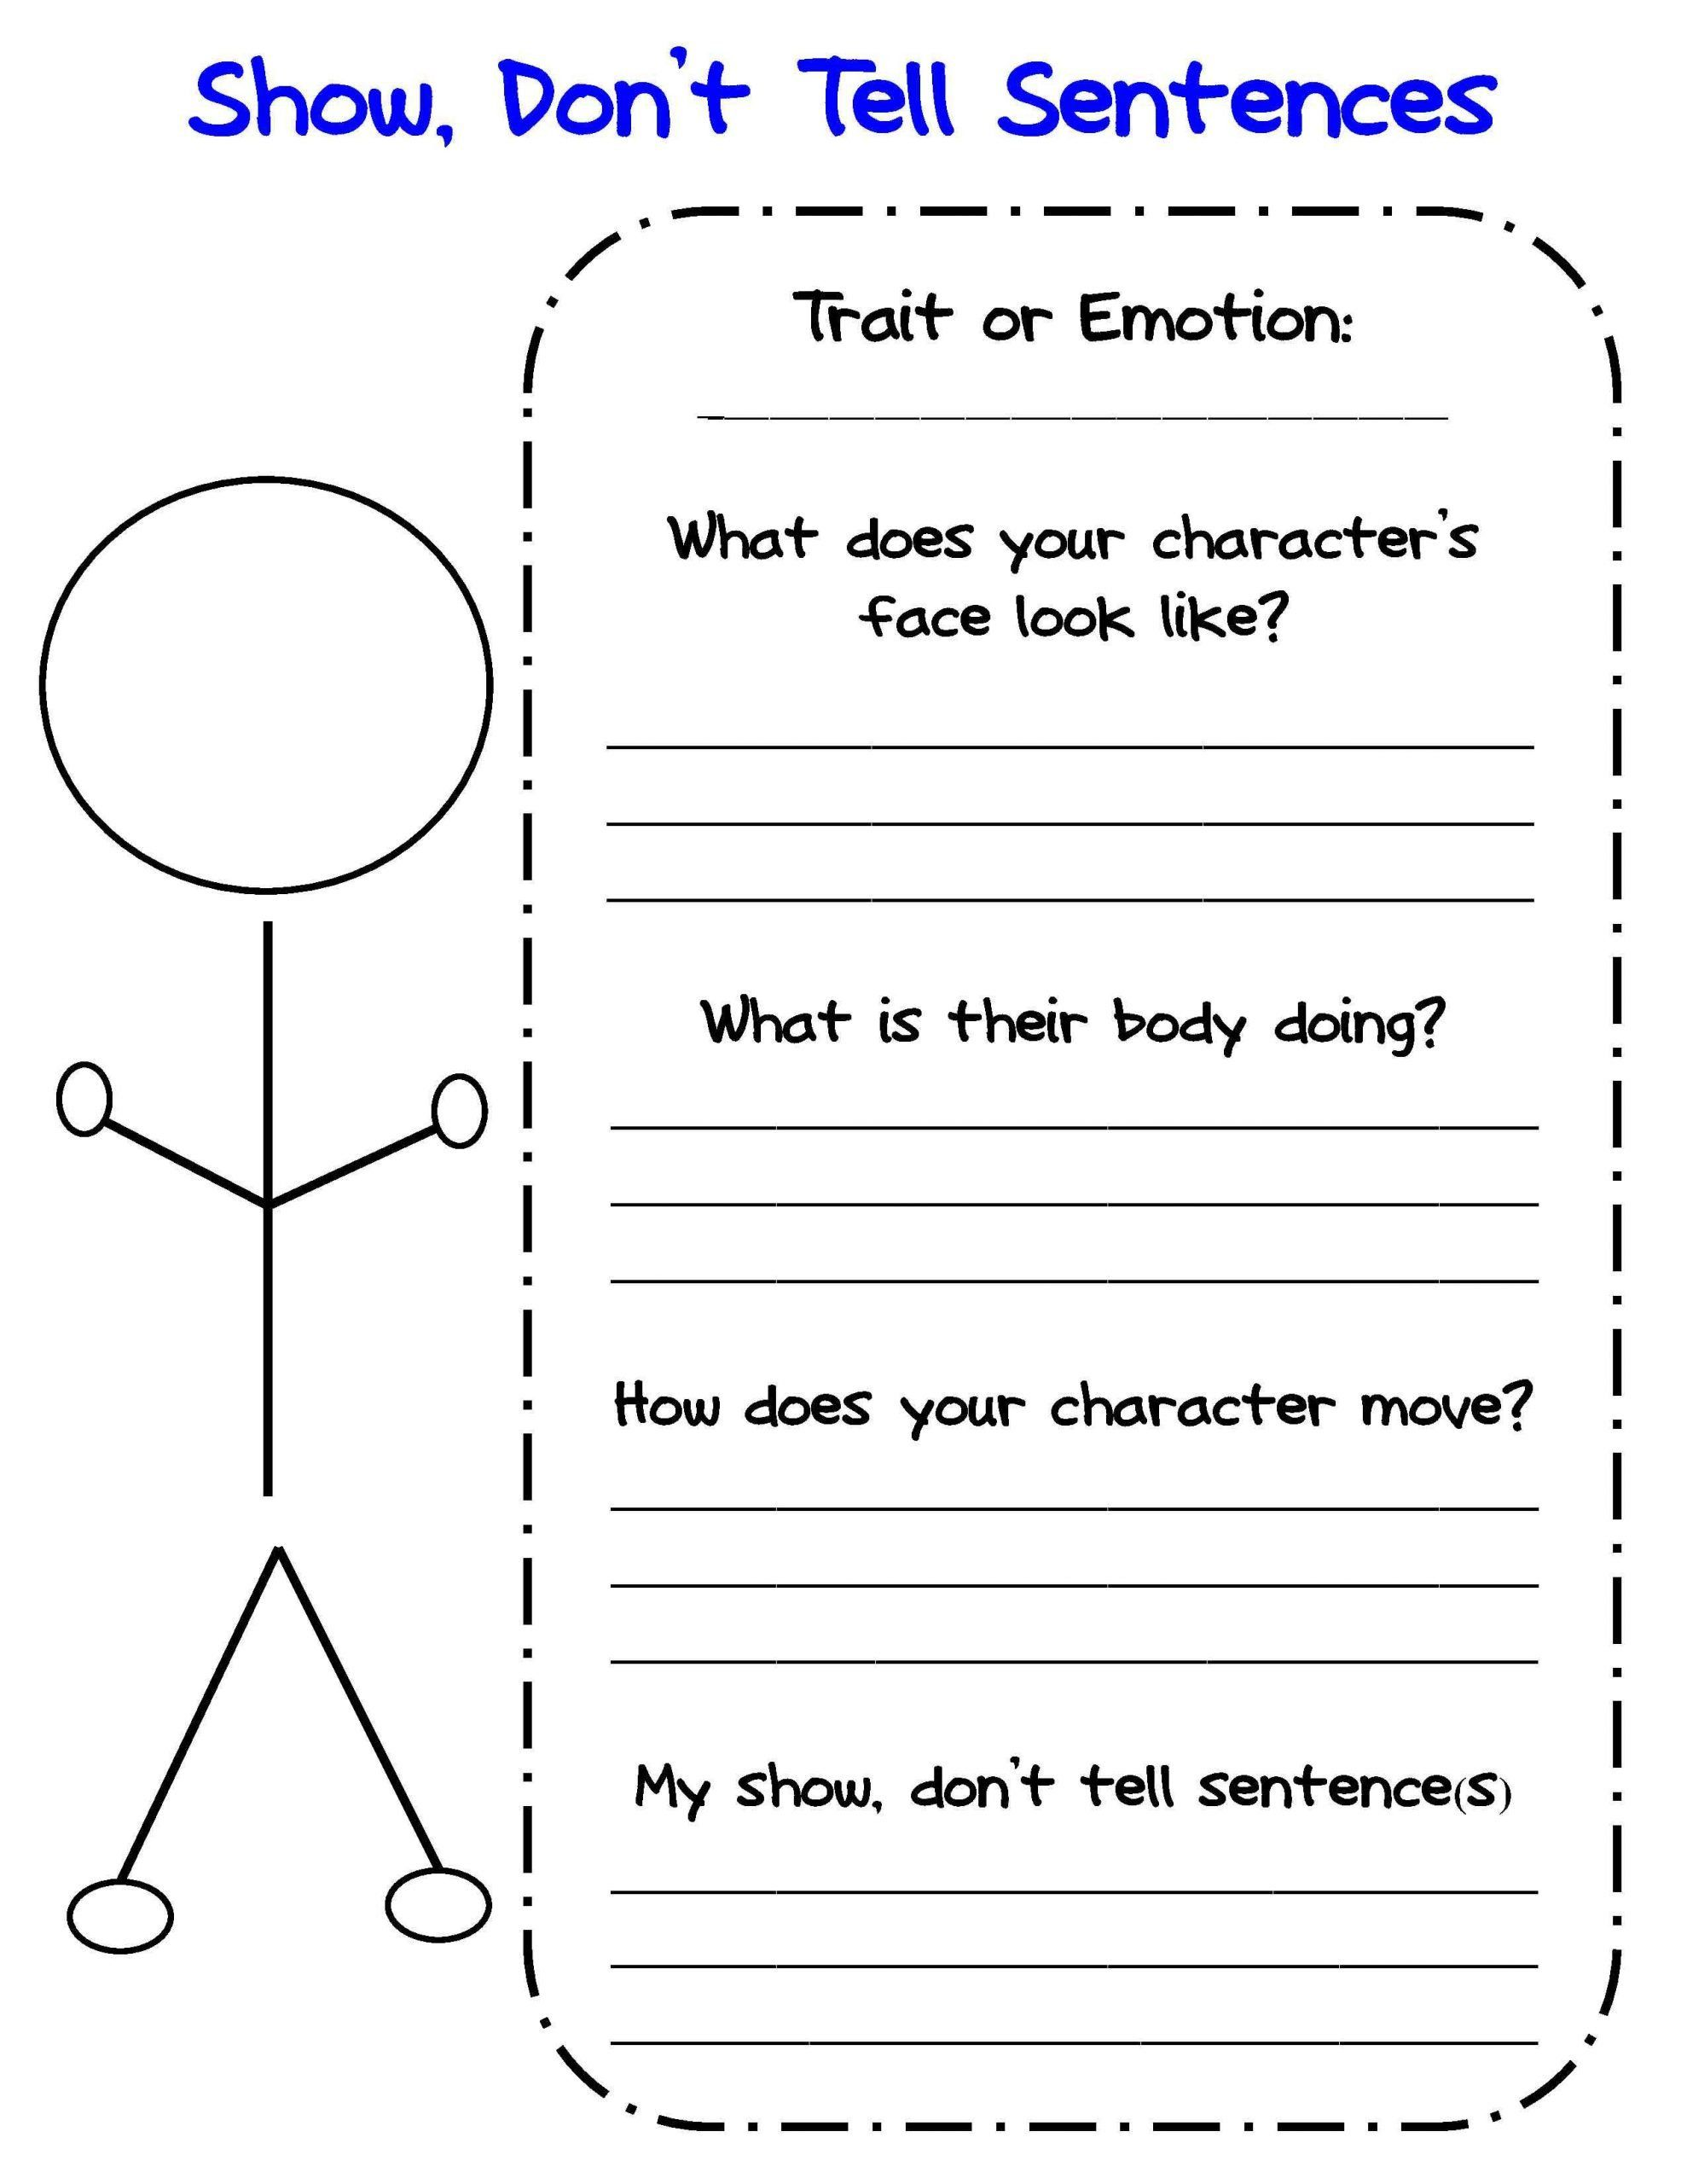 Character Traits Worksheet 4th Grade Bringing Characters To Life In Writer S Worksh Personal Narrative Graphic Organizer Descriptive Writing Graphic Organizers